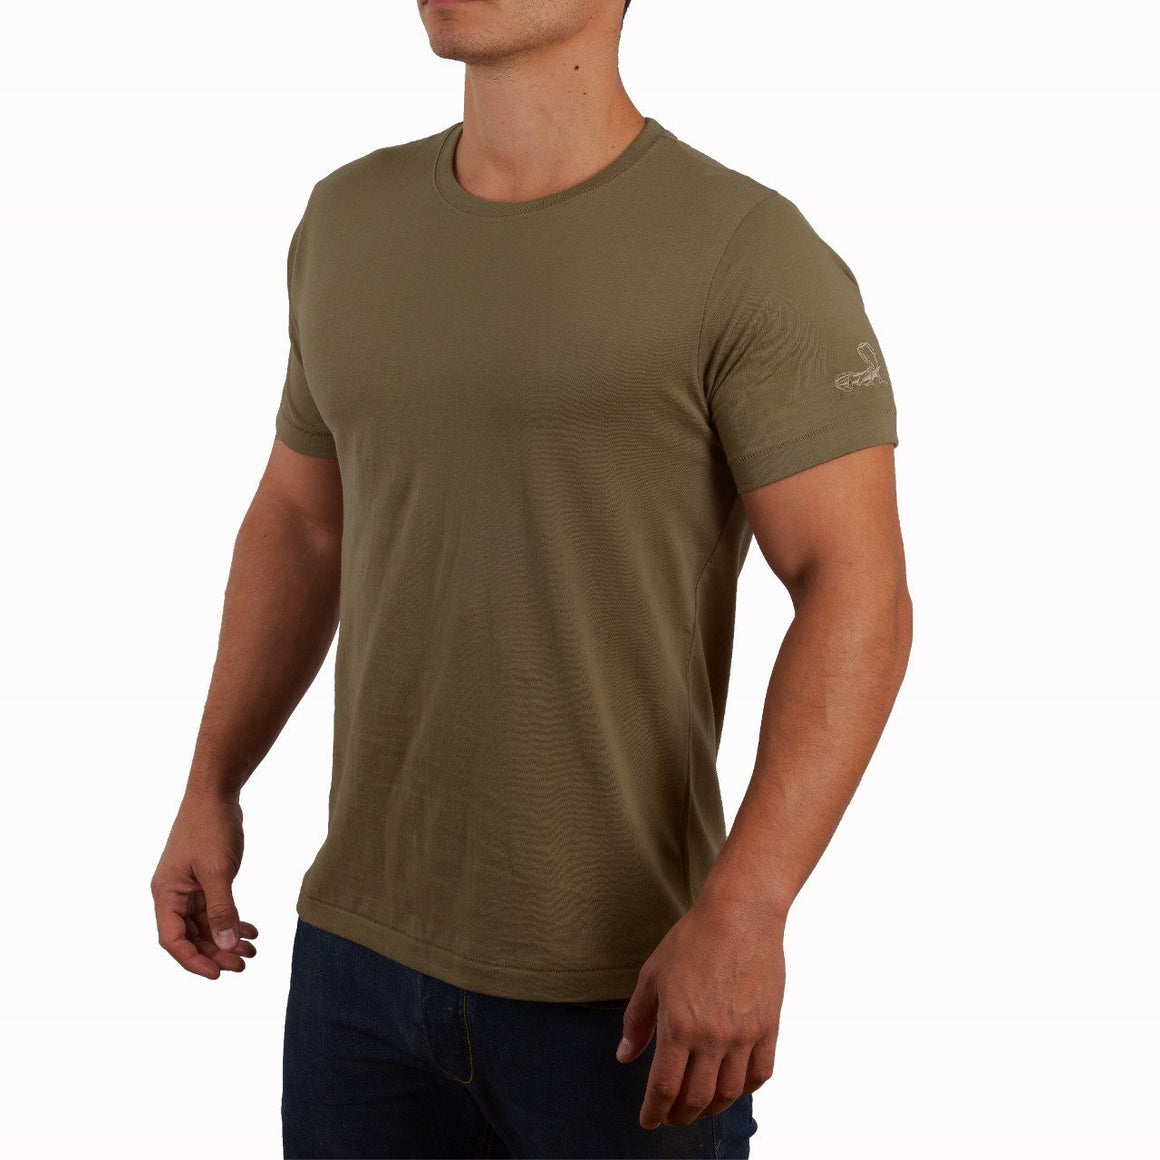 R&R Mens Crew, Medium, Coyote Tan - Agilite (531419331)